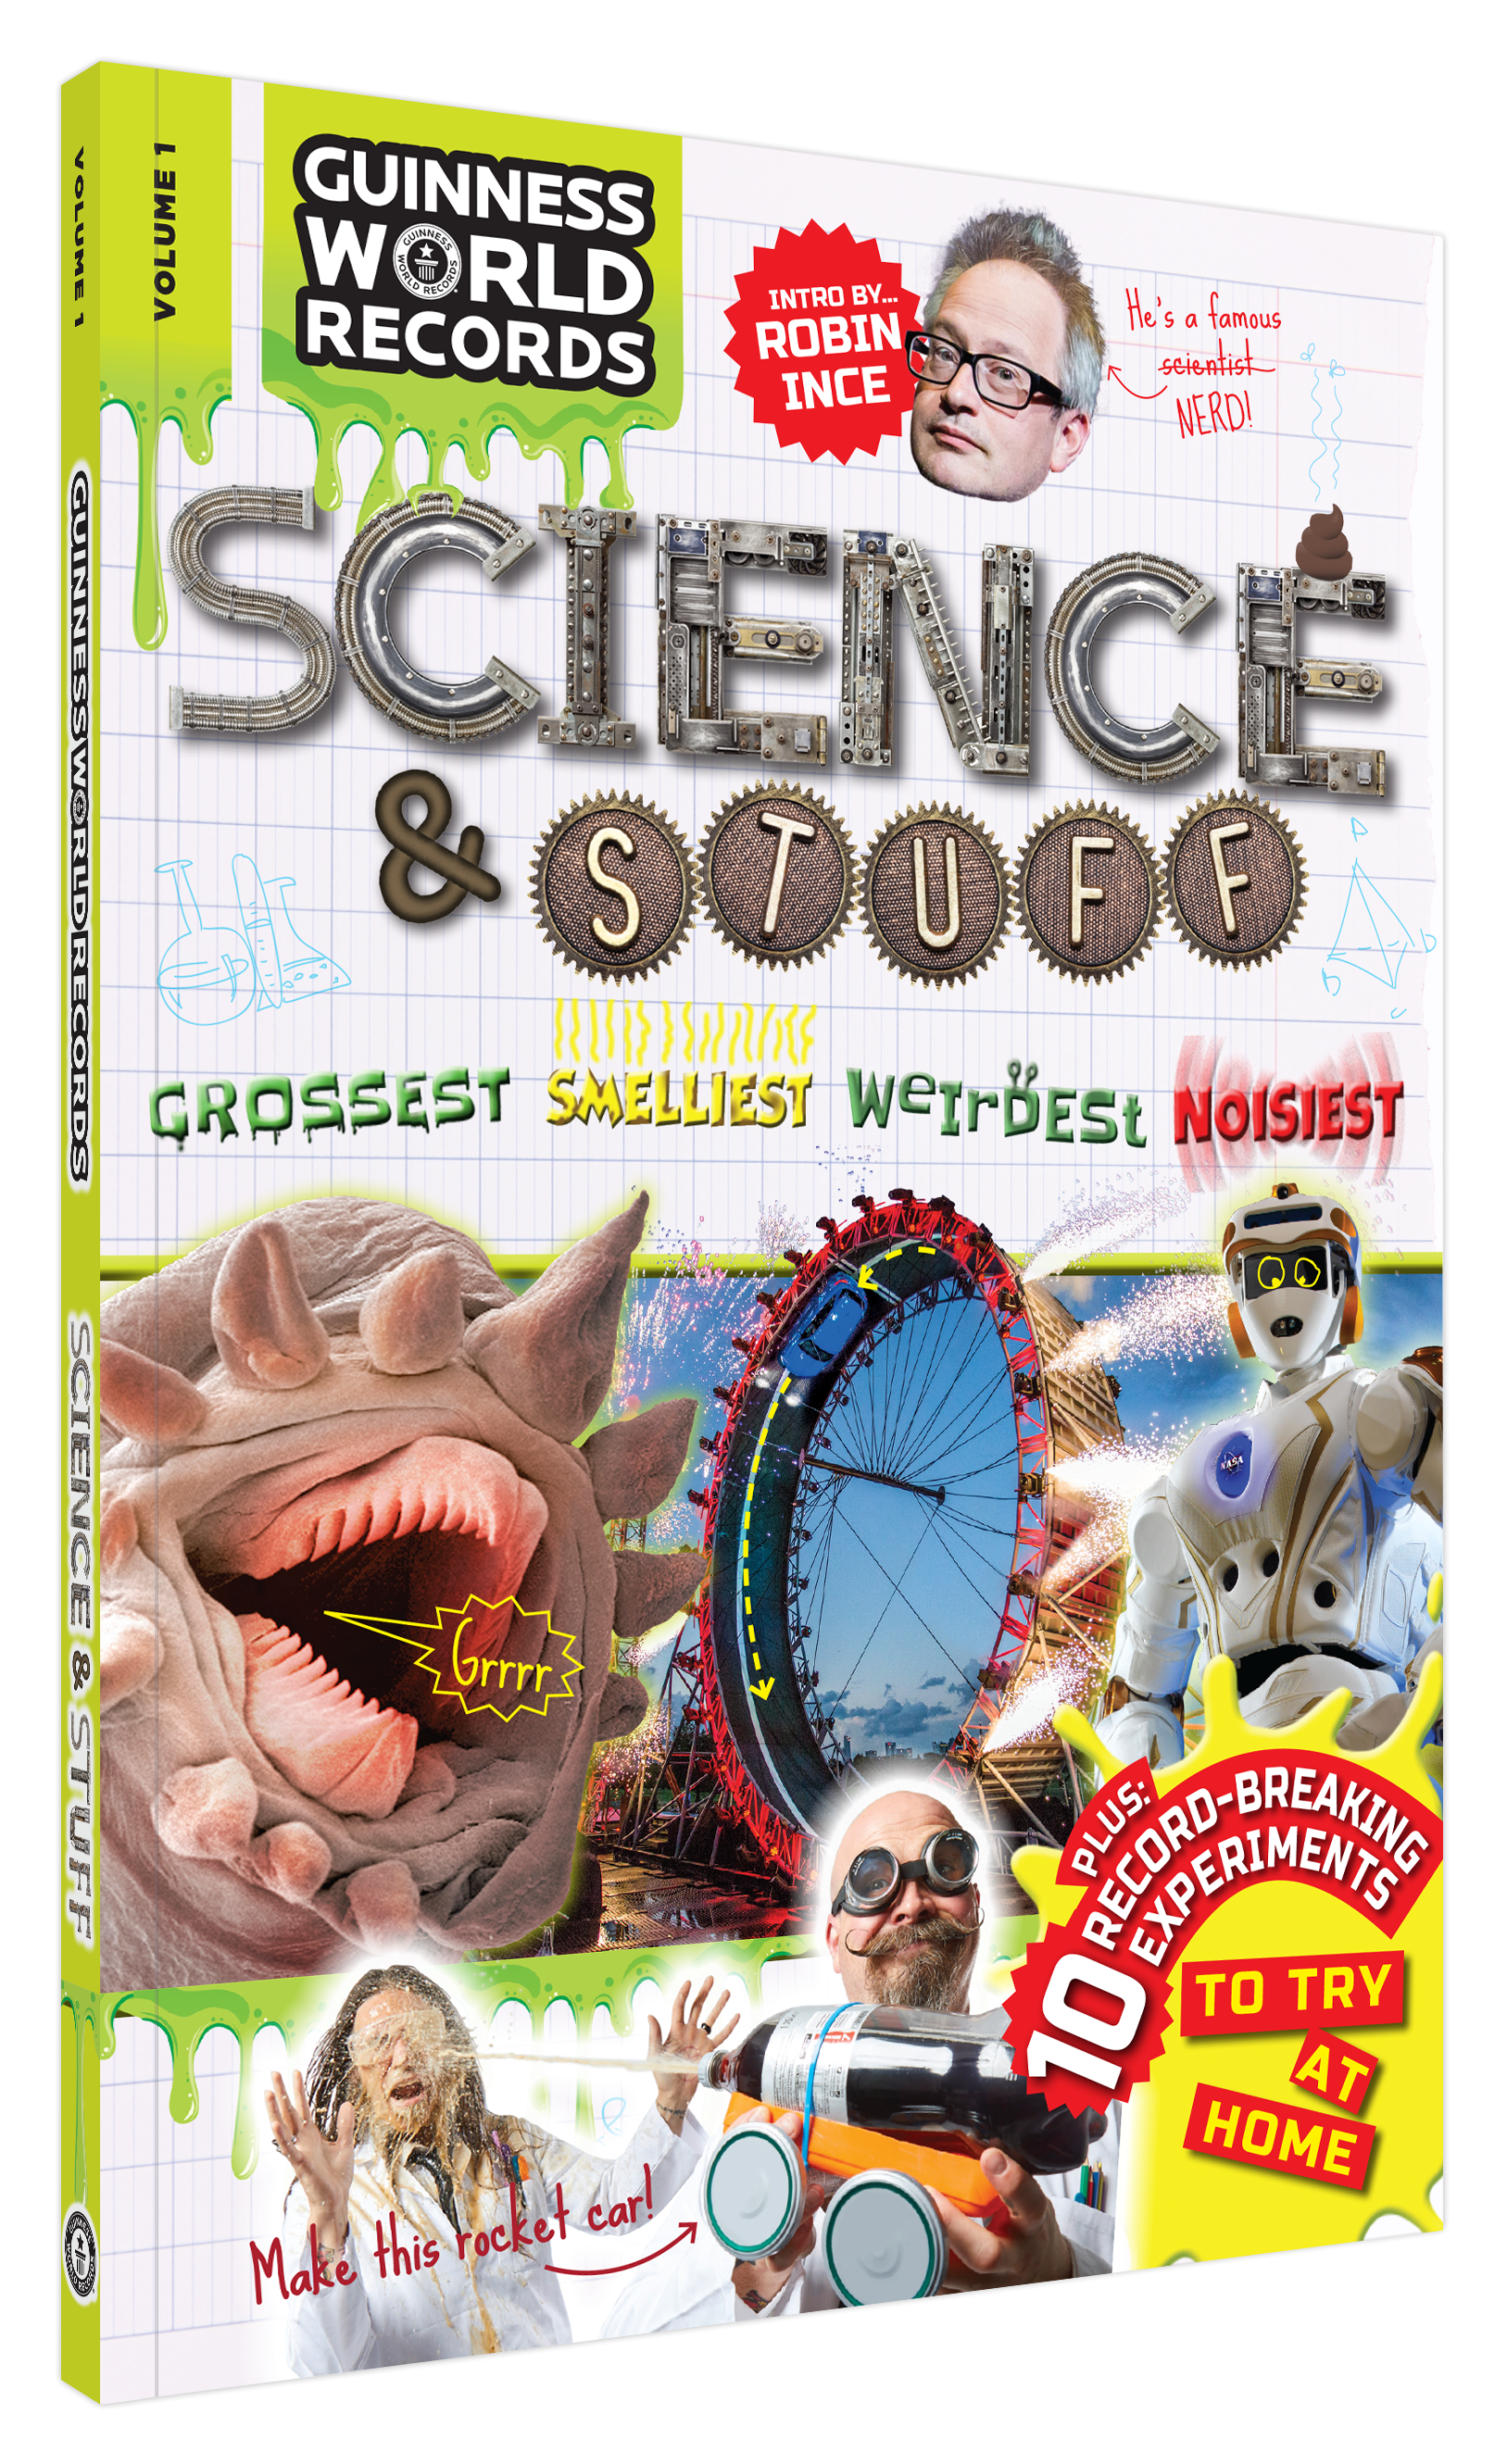 Guinness World Records Science & Stuff Book cover